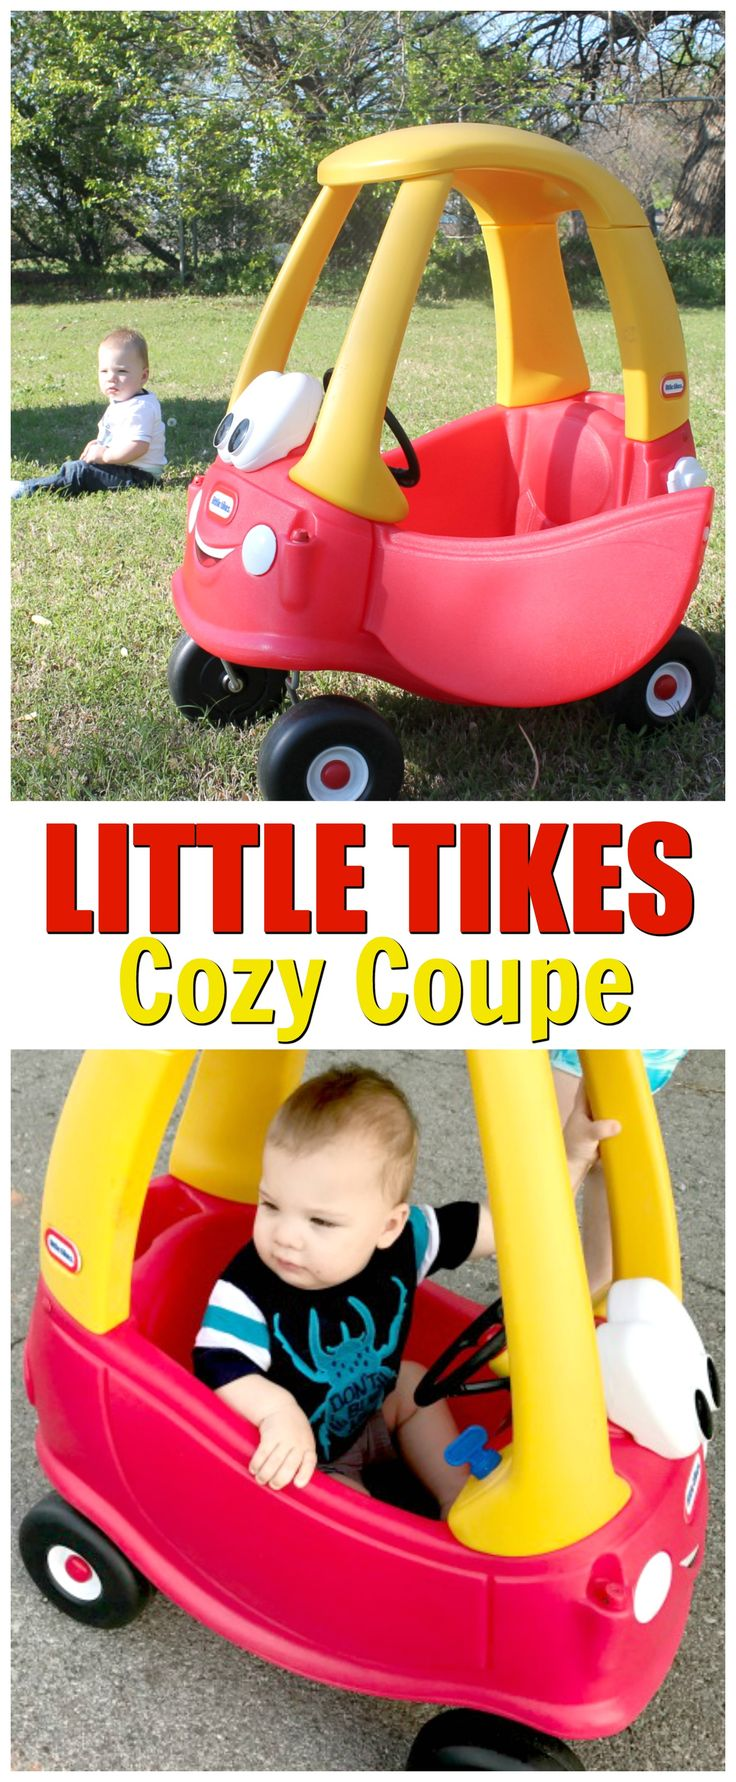 Little tikes cozy coupe outdoor riding car for toddlers this riding toy for toddlers is a great gift for 1 year old boys toddlers love the cozy coupe car